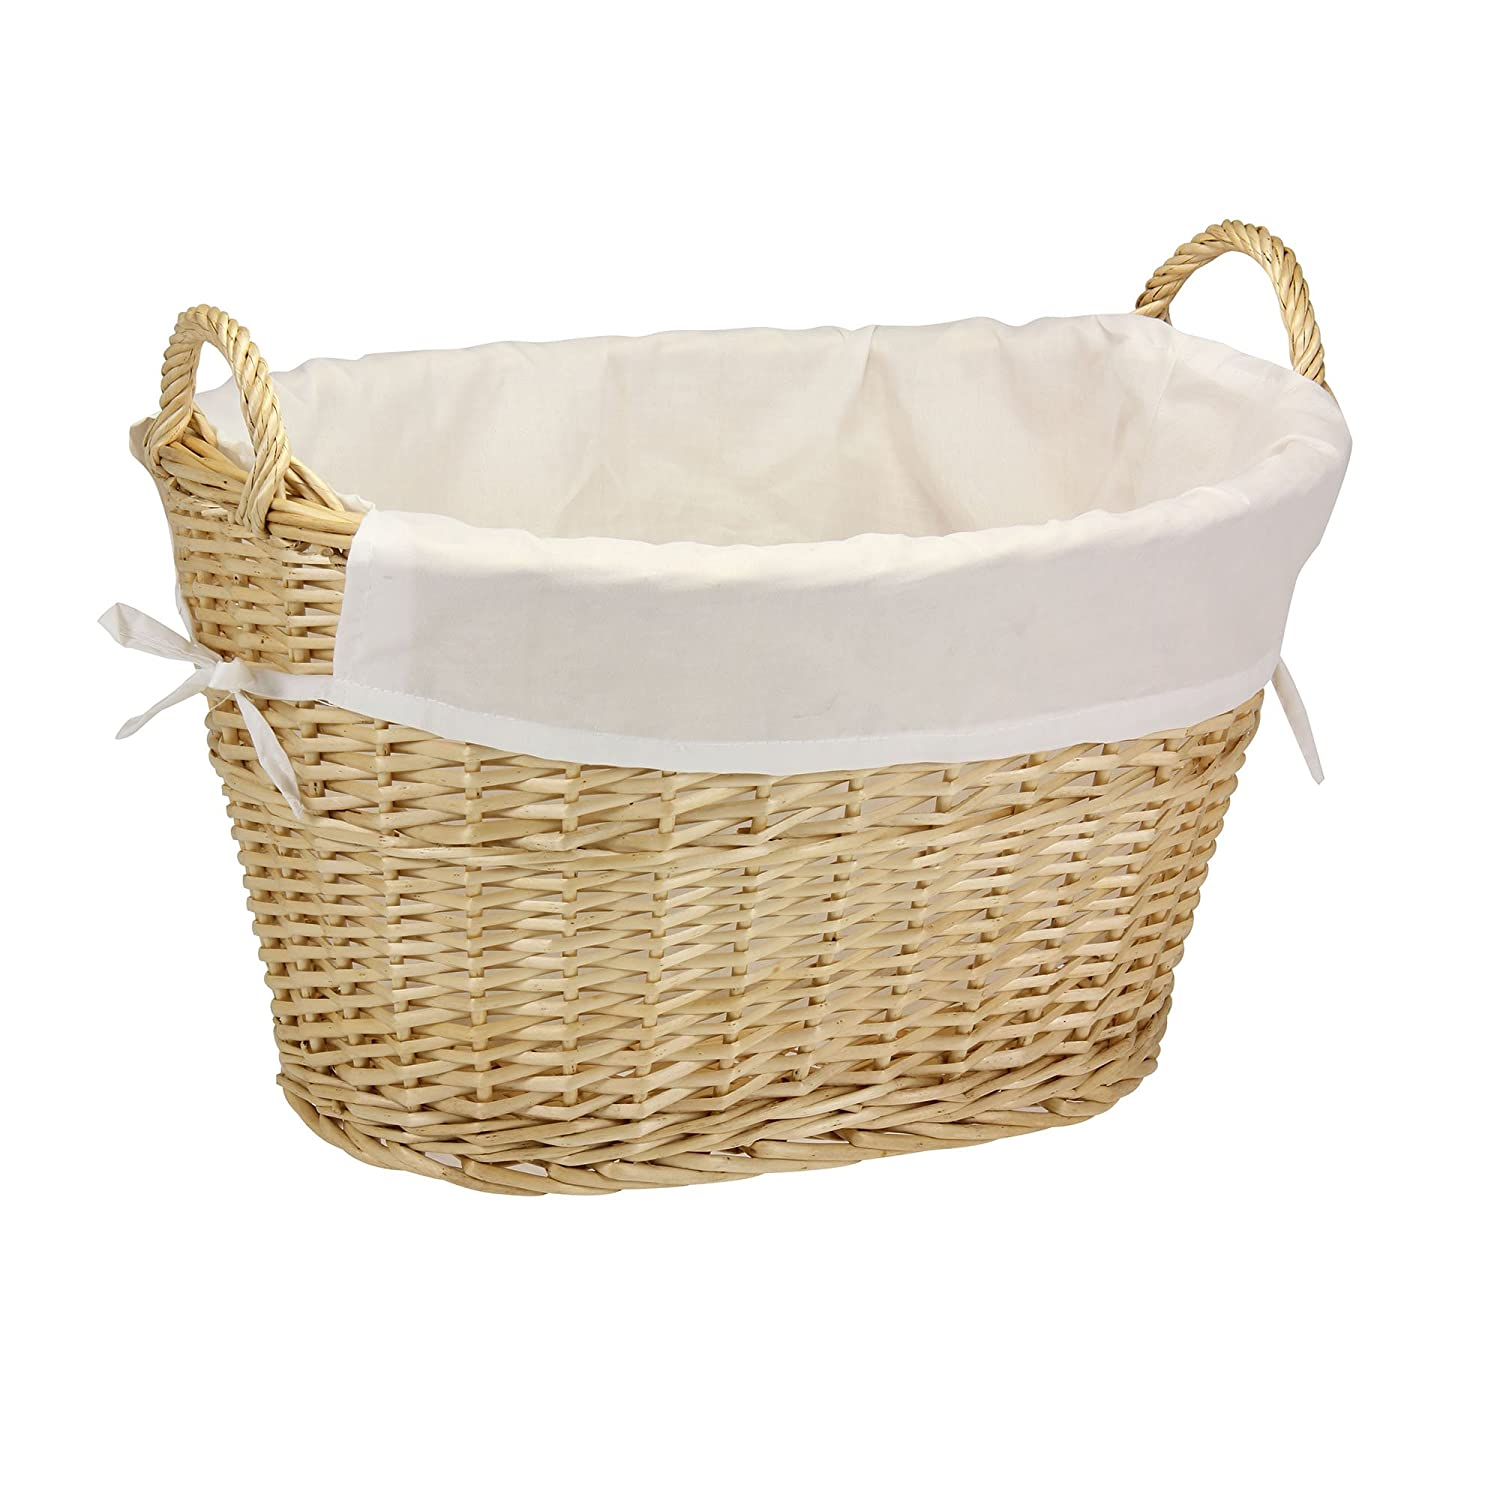 Laundry Basket With Handles Hamper In Wicker Or Plastic